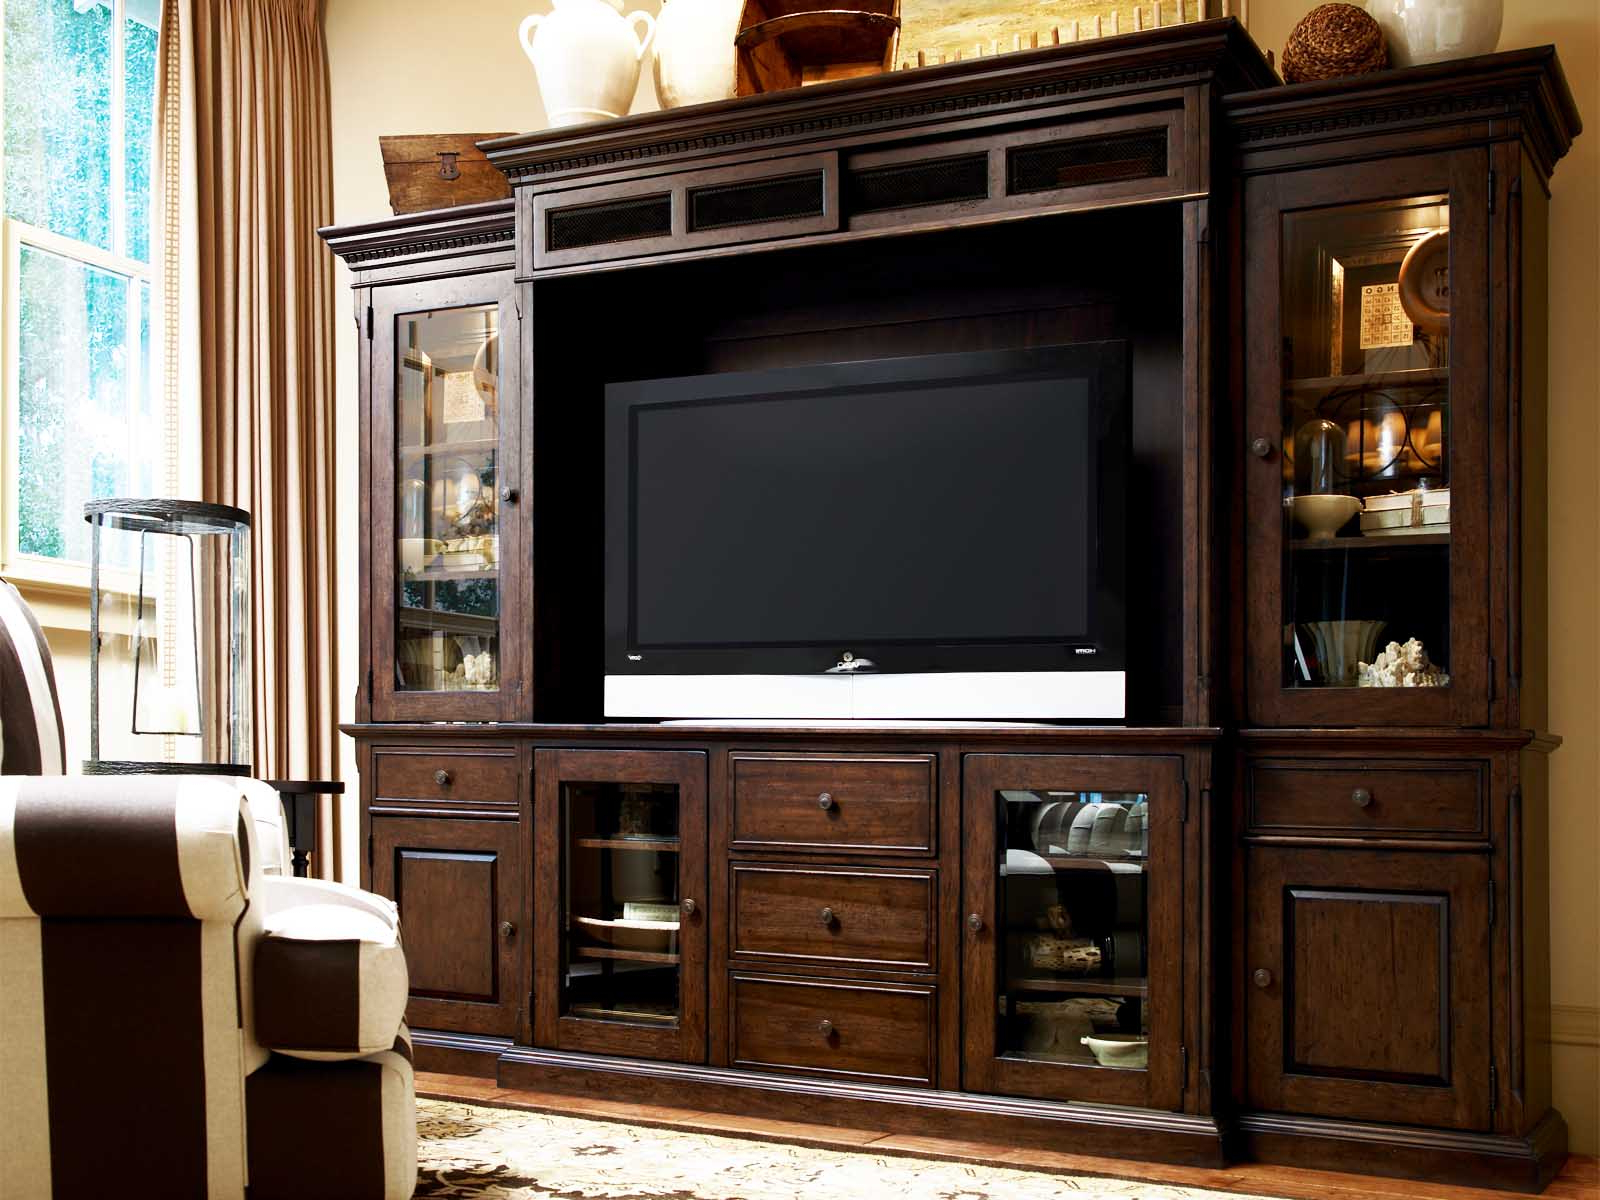 2017 Tv Cabinets With Glass Doors Throughout Lcd Tv Cabinet Designs Photos Stand Ideas For Small Spaces (Gallery 9 of 20)